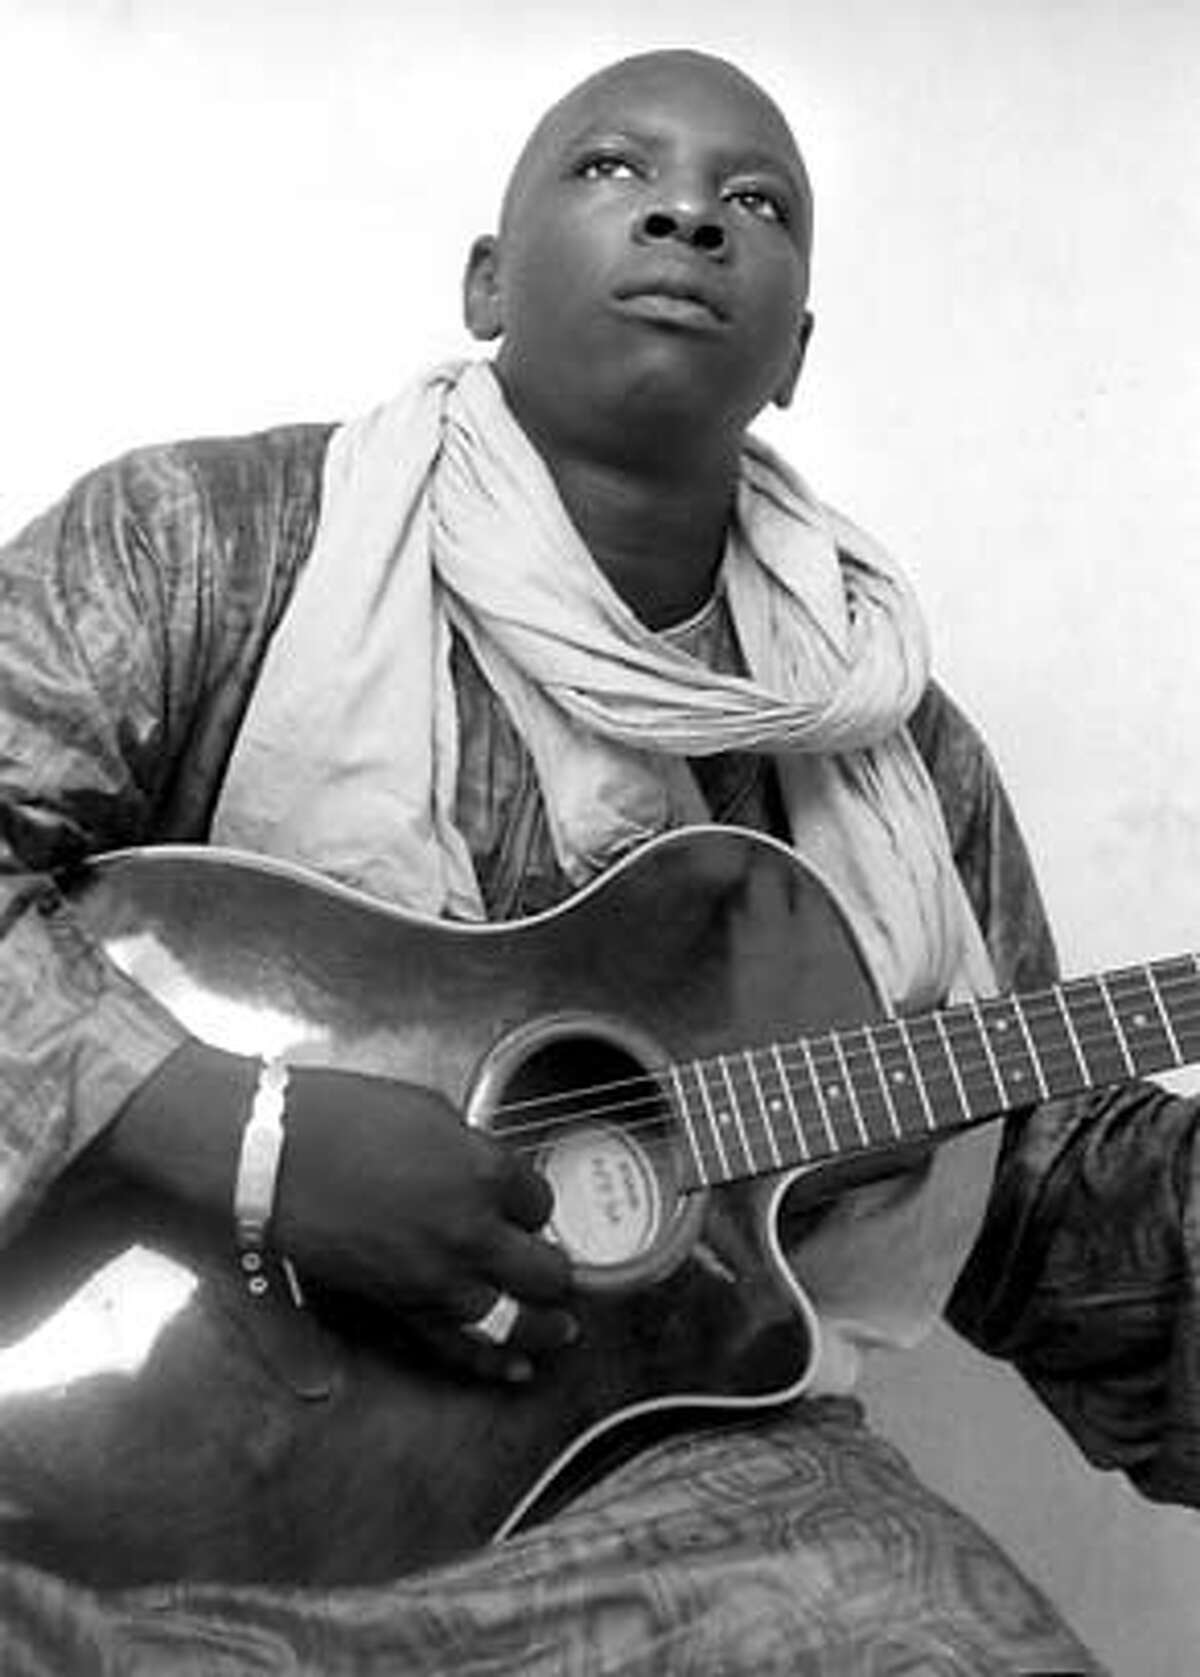 Vieux Farka Toure Ran on: 10-28-2007 Vieux Farka Toure: His father, Ali, was a great influence on the young musician. Ran on: 10-28-2007